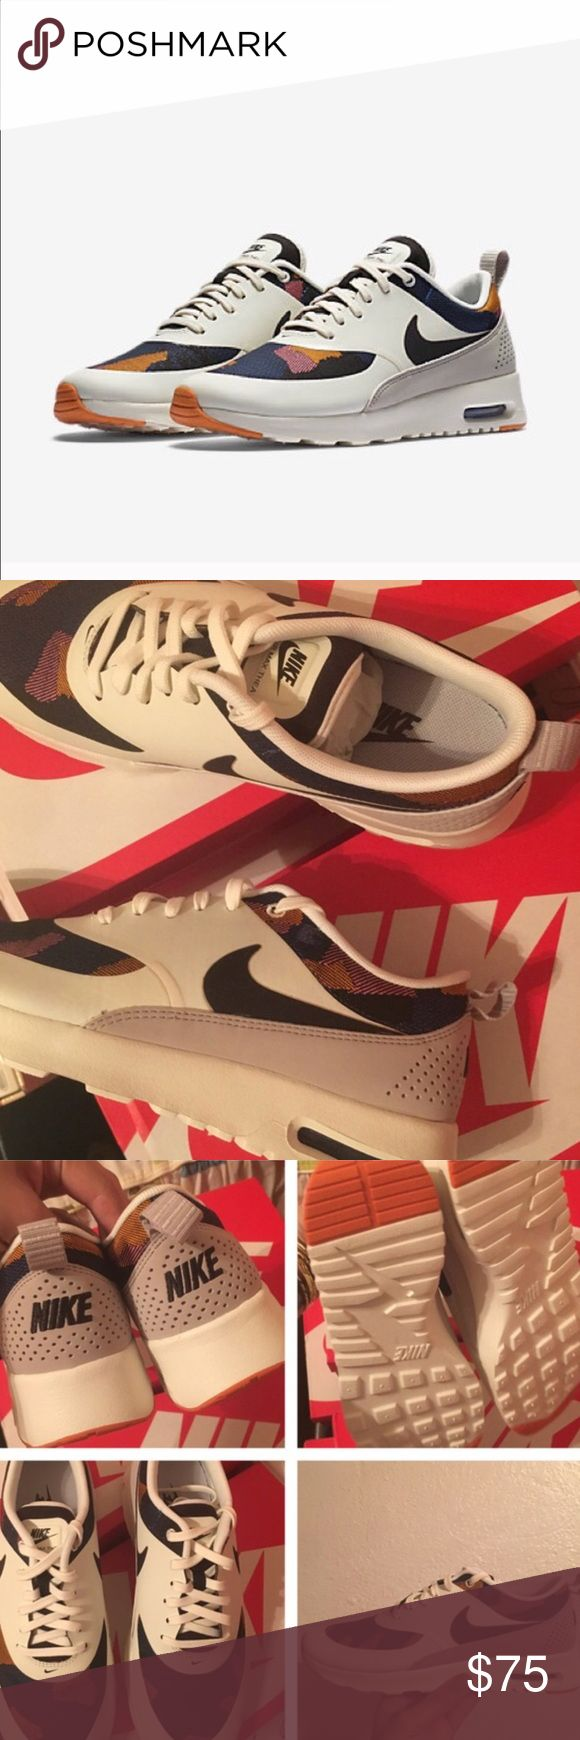 Women's Nike Air Max Thea Brand new with the full box Nike Shoes Athletic Shoes